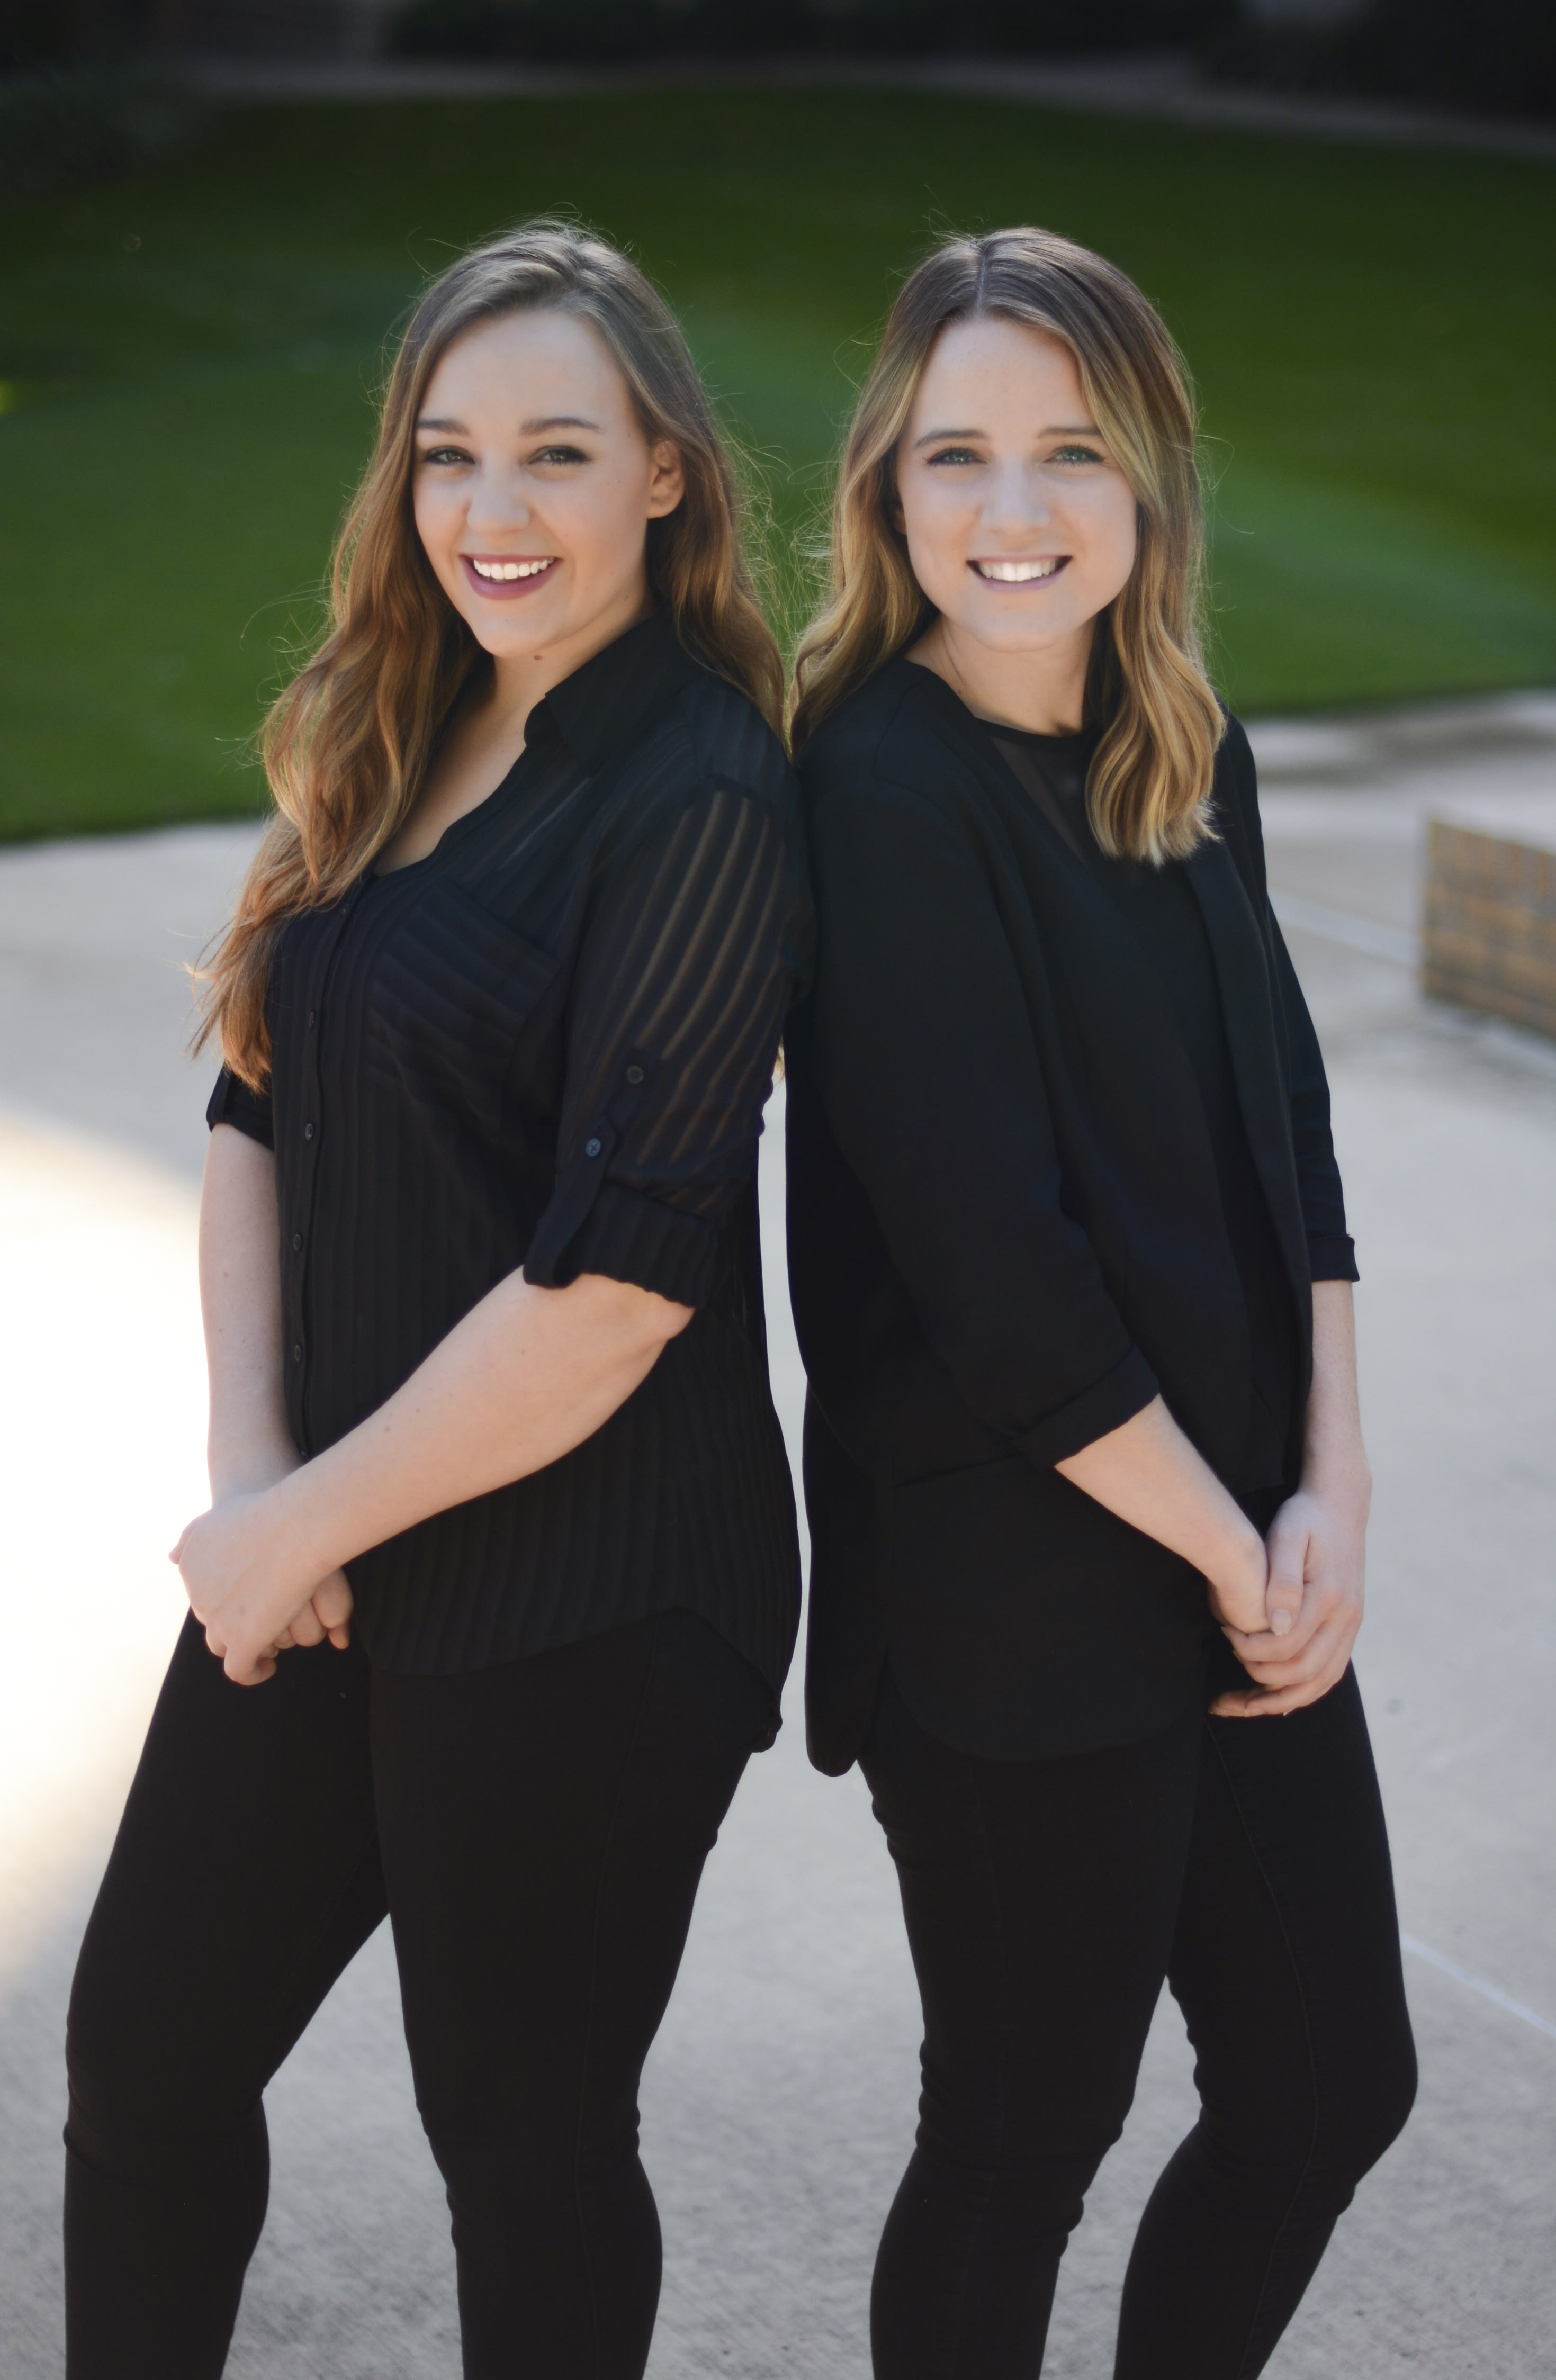 Pitch to retail execs puts UNT team in top three at retail industry's biggest event